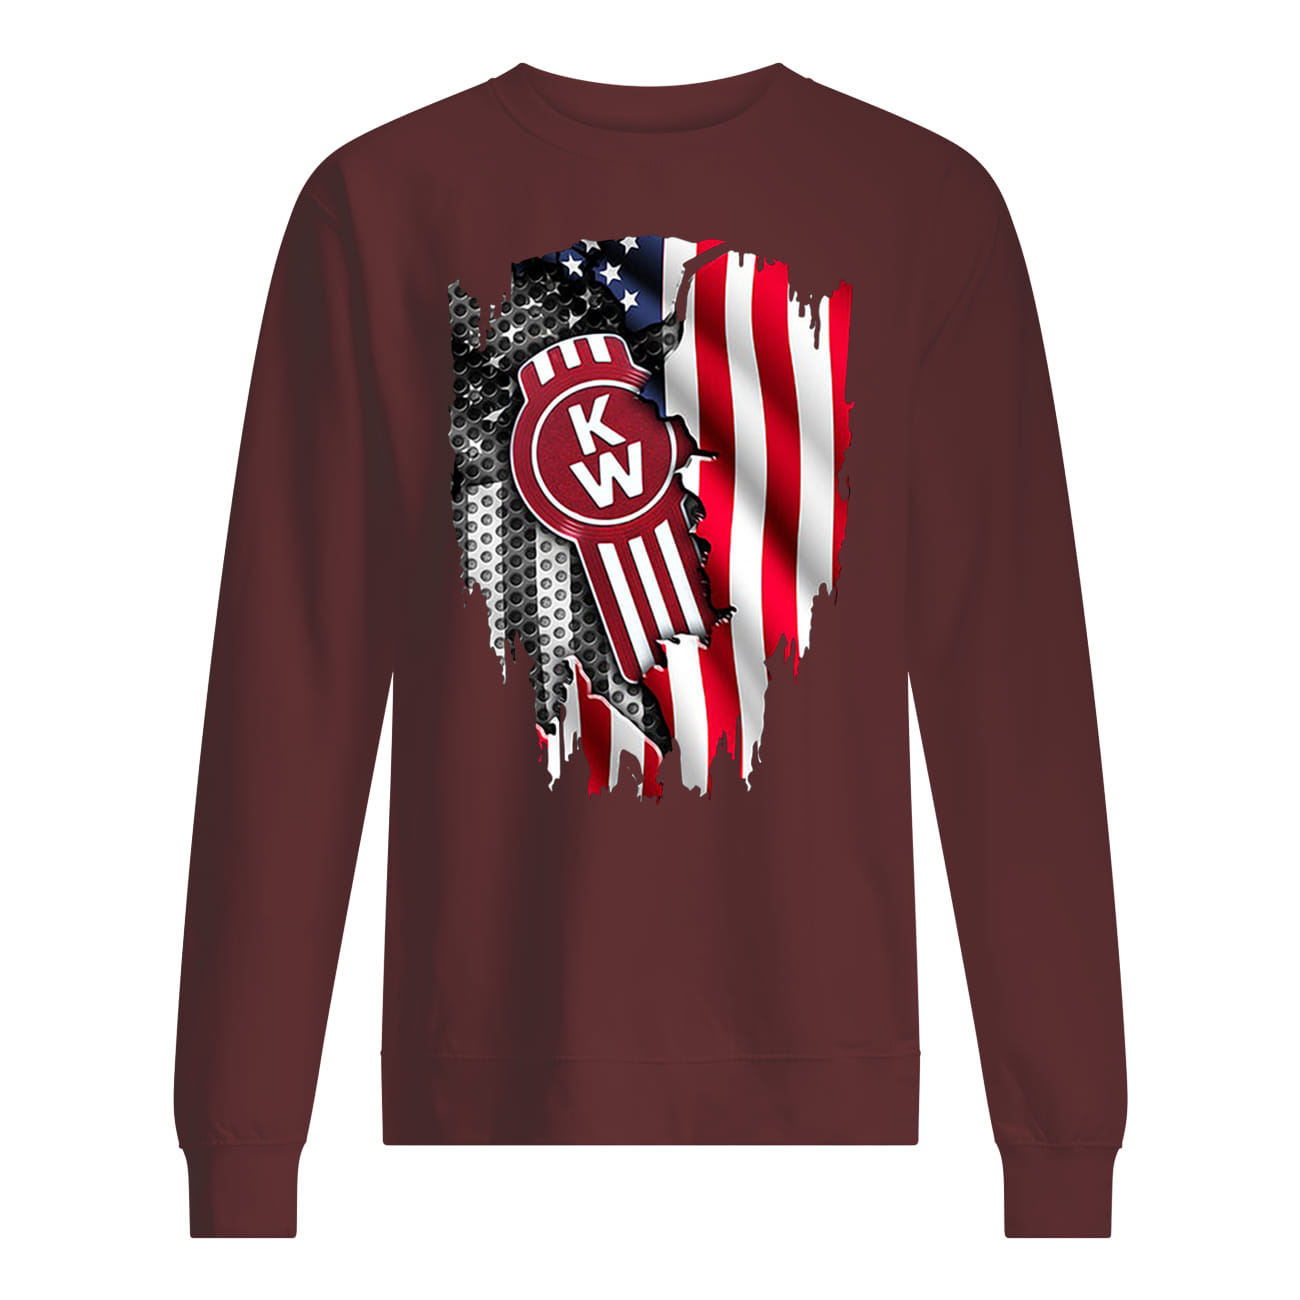 Kenworth trucks the world's best inside american flag sweatshirt